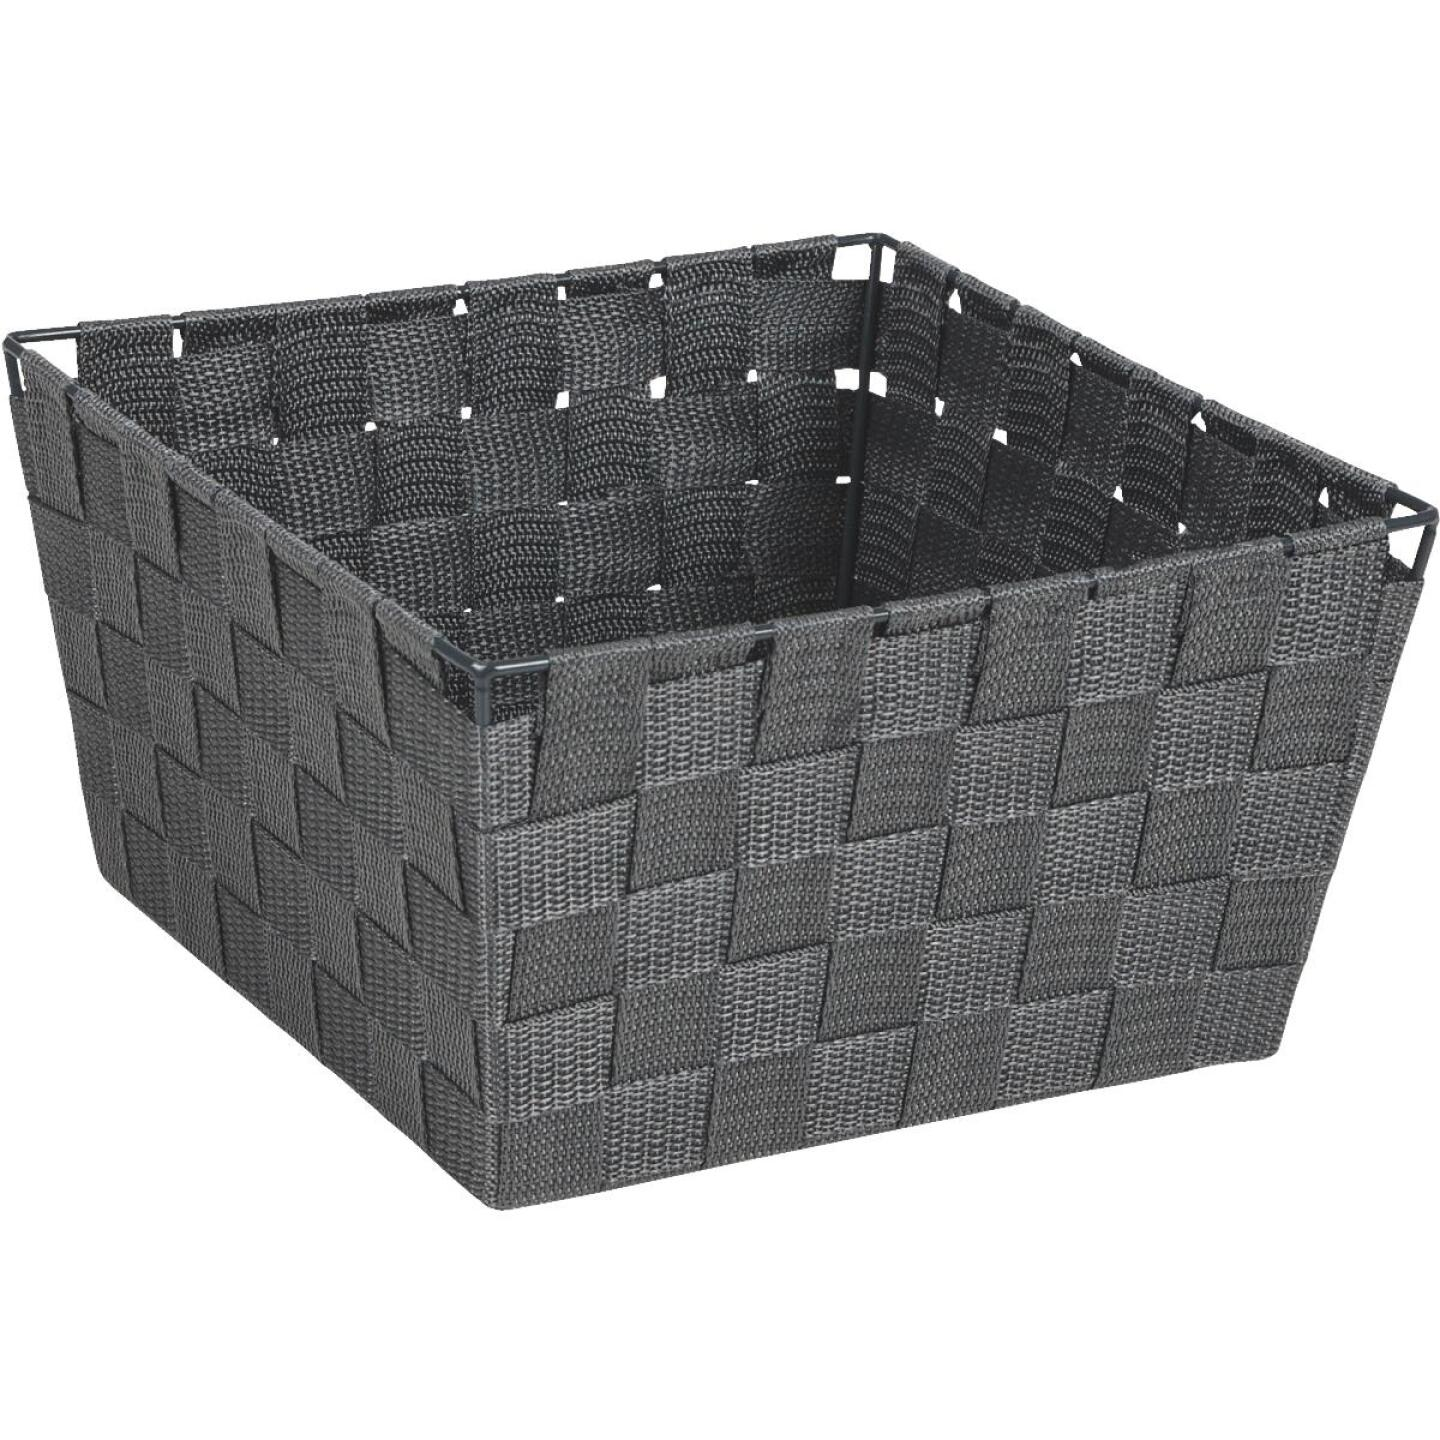 Home Impressions 9.75 In. x 5.5 In. H. Woven Storage Basket, Gray Image 1